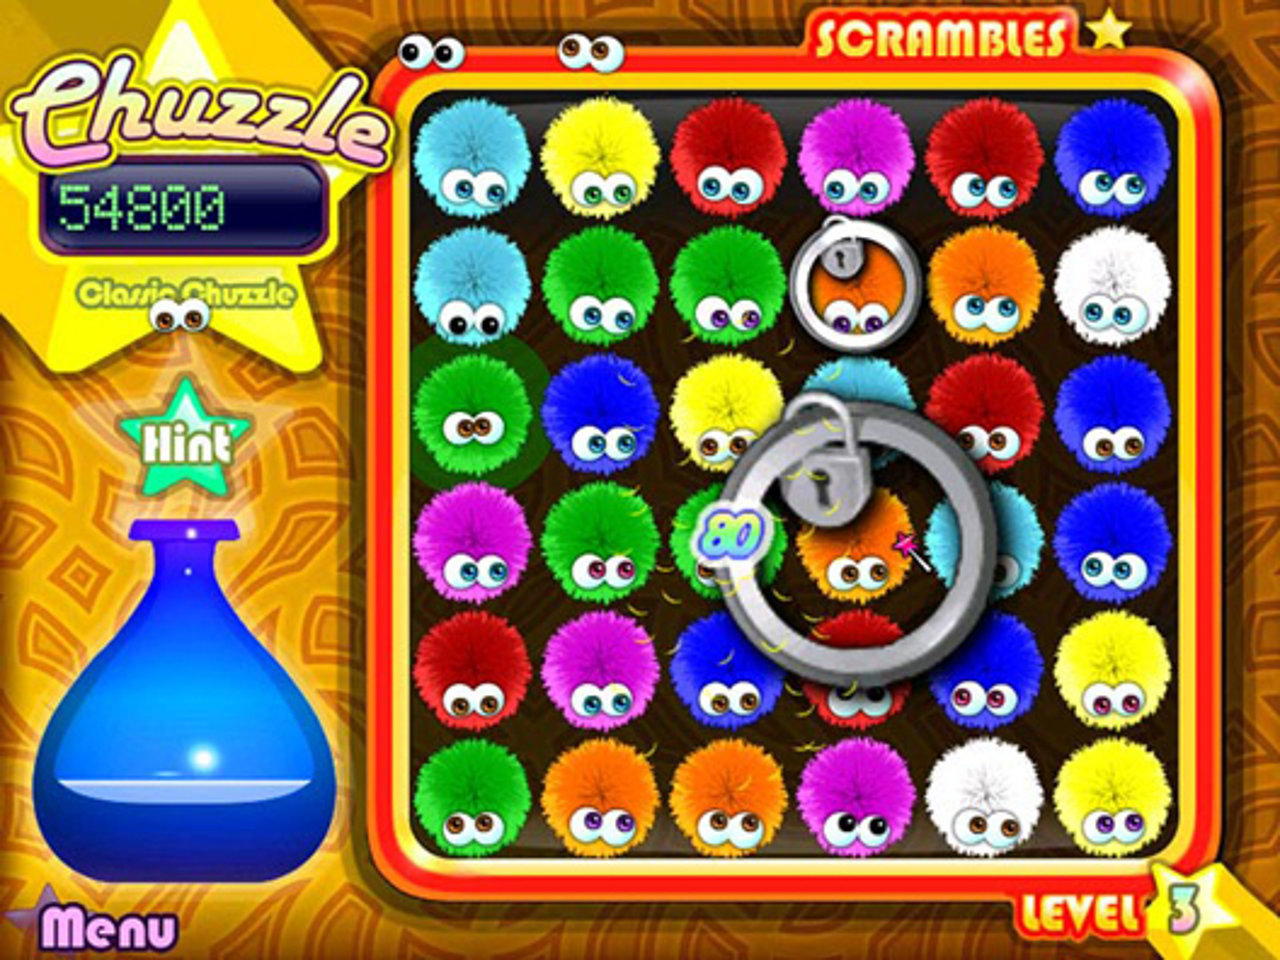 Chuzzle deluxe download (2005 puzzle game).